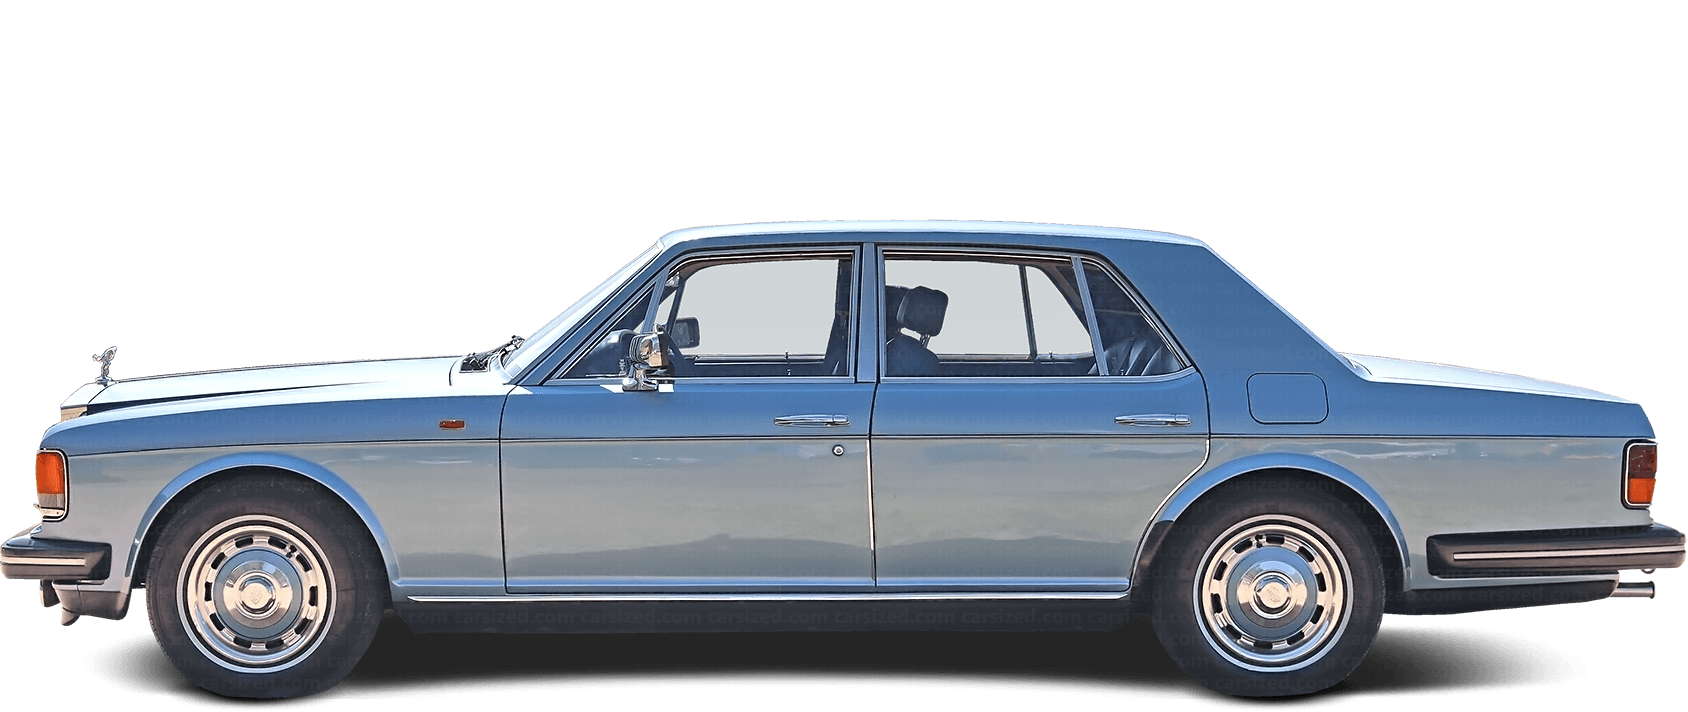 Rolls-Royce Silver Spirit Sedan 1980-1989